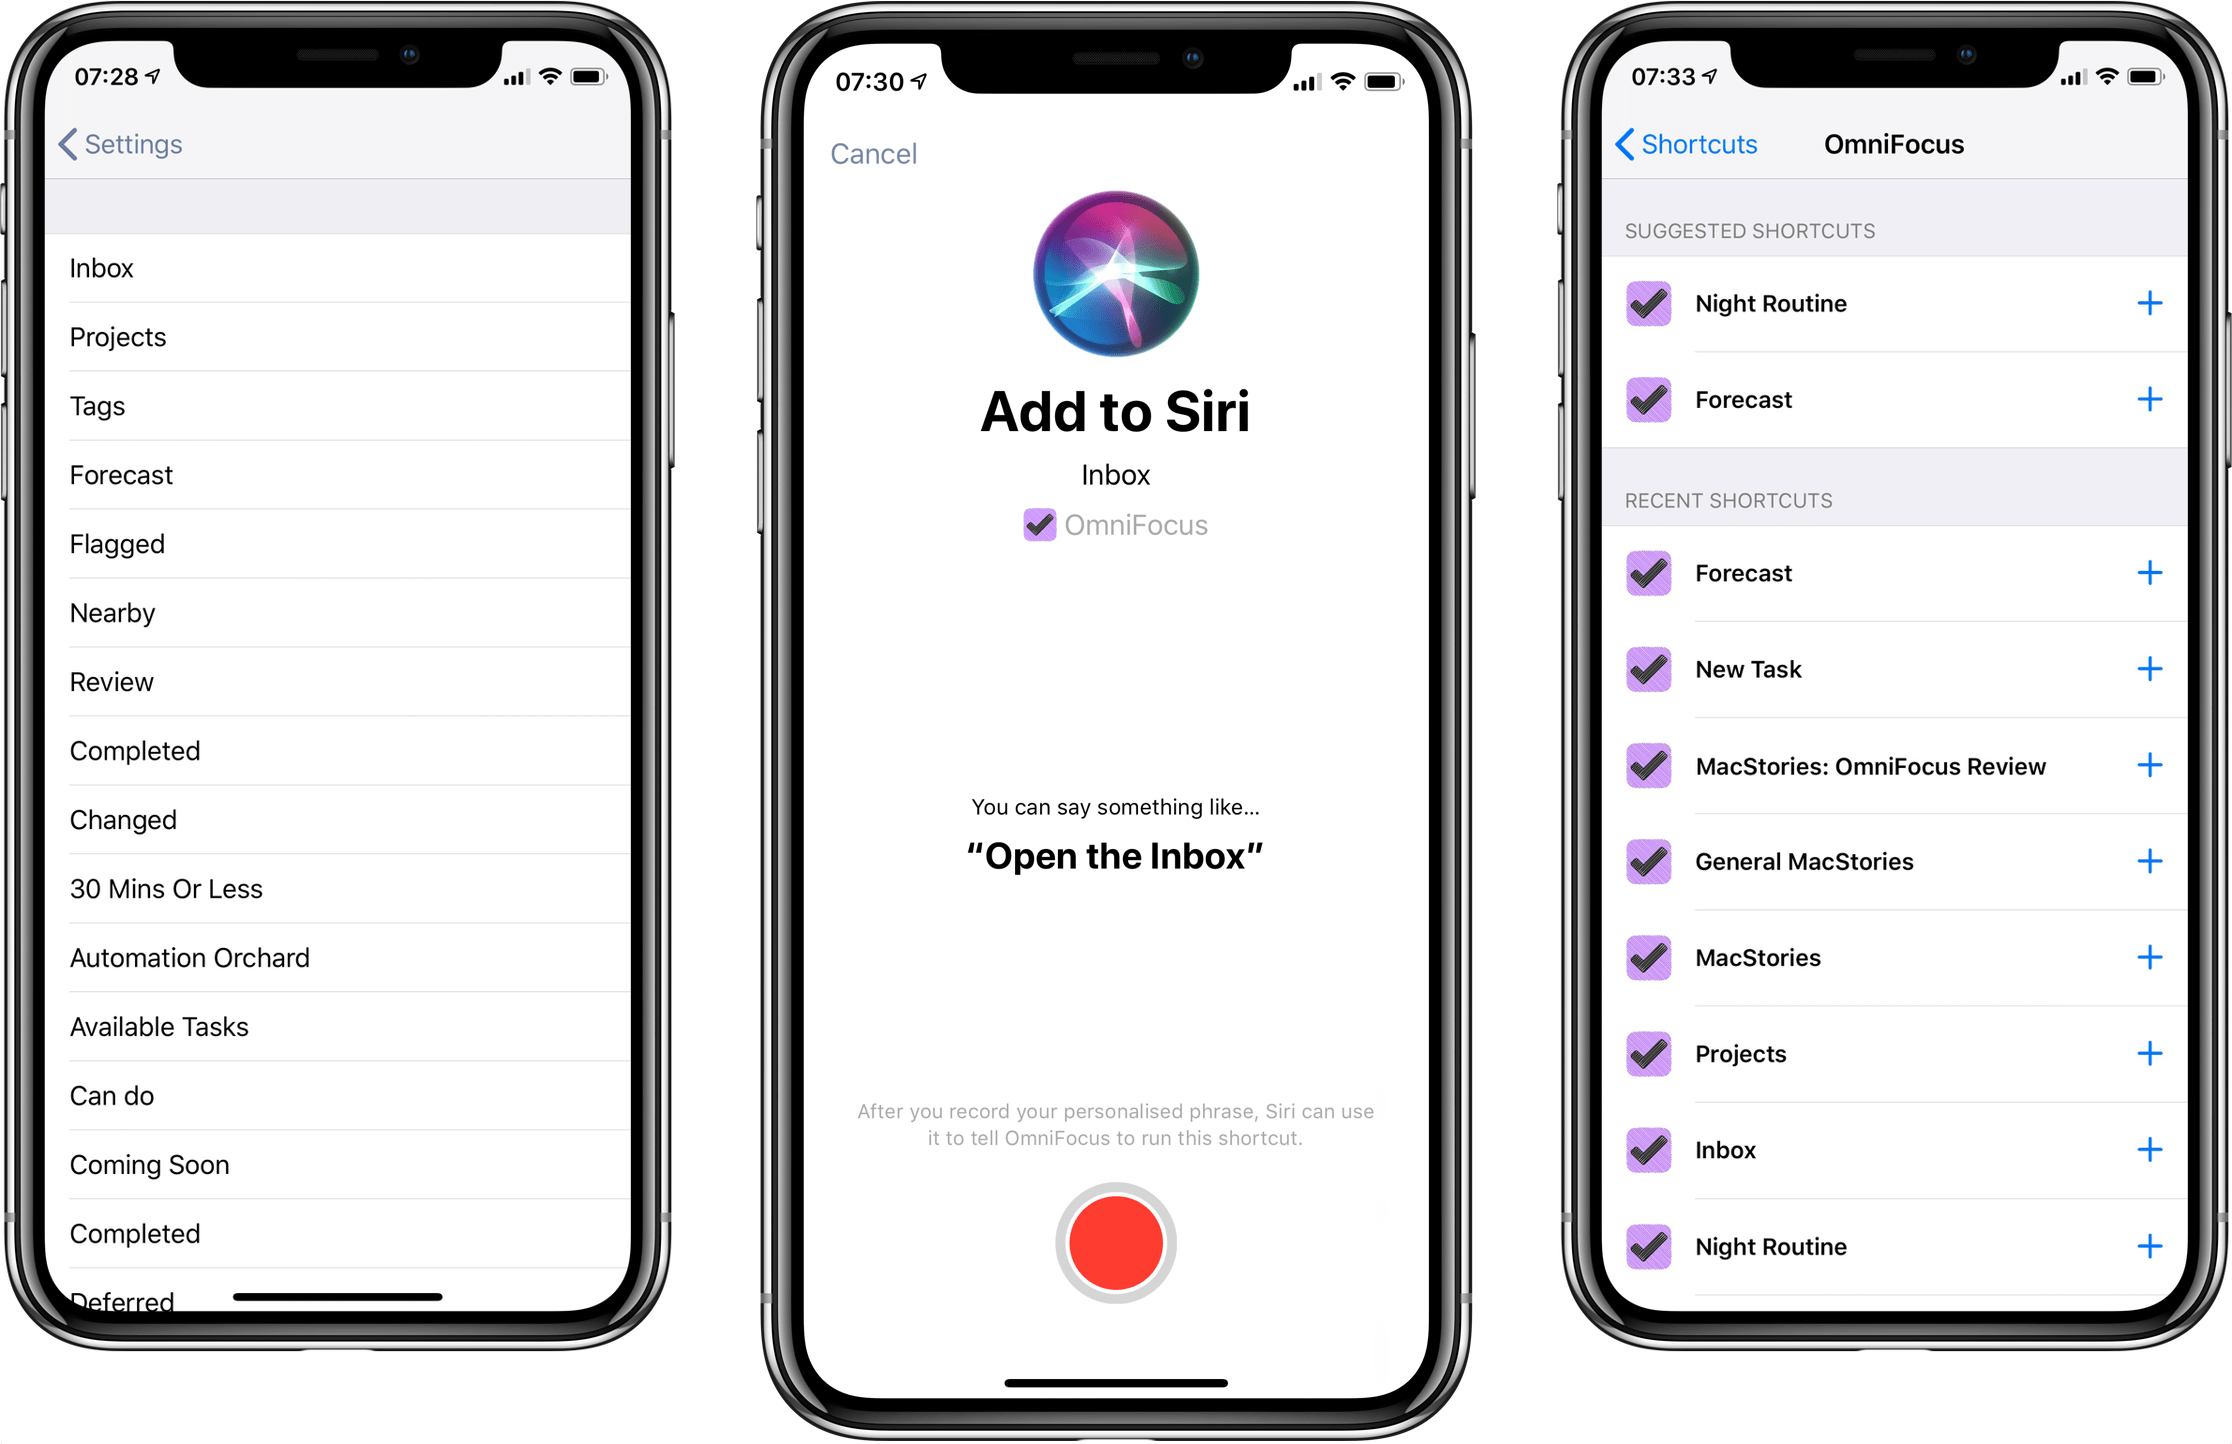 Siri Shortcuts in OmniFocus 3.1 for iOS.